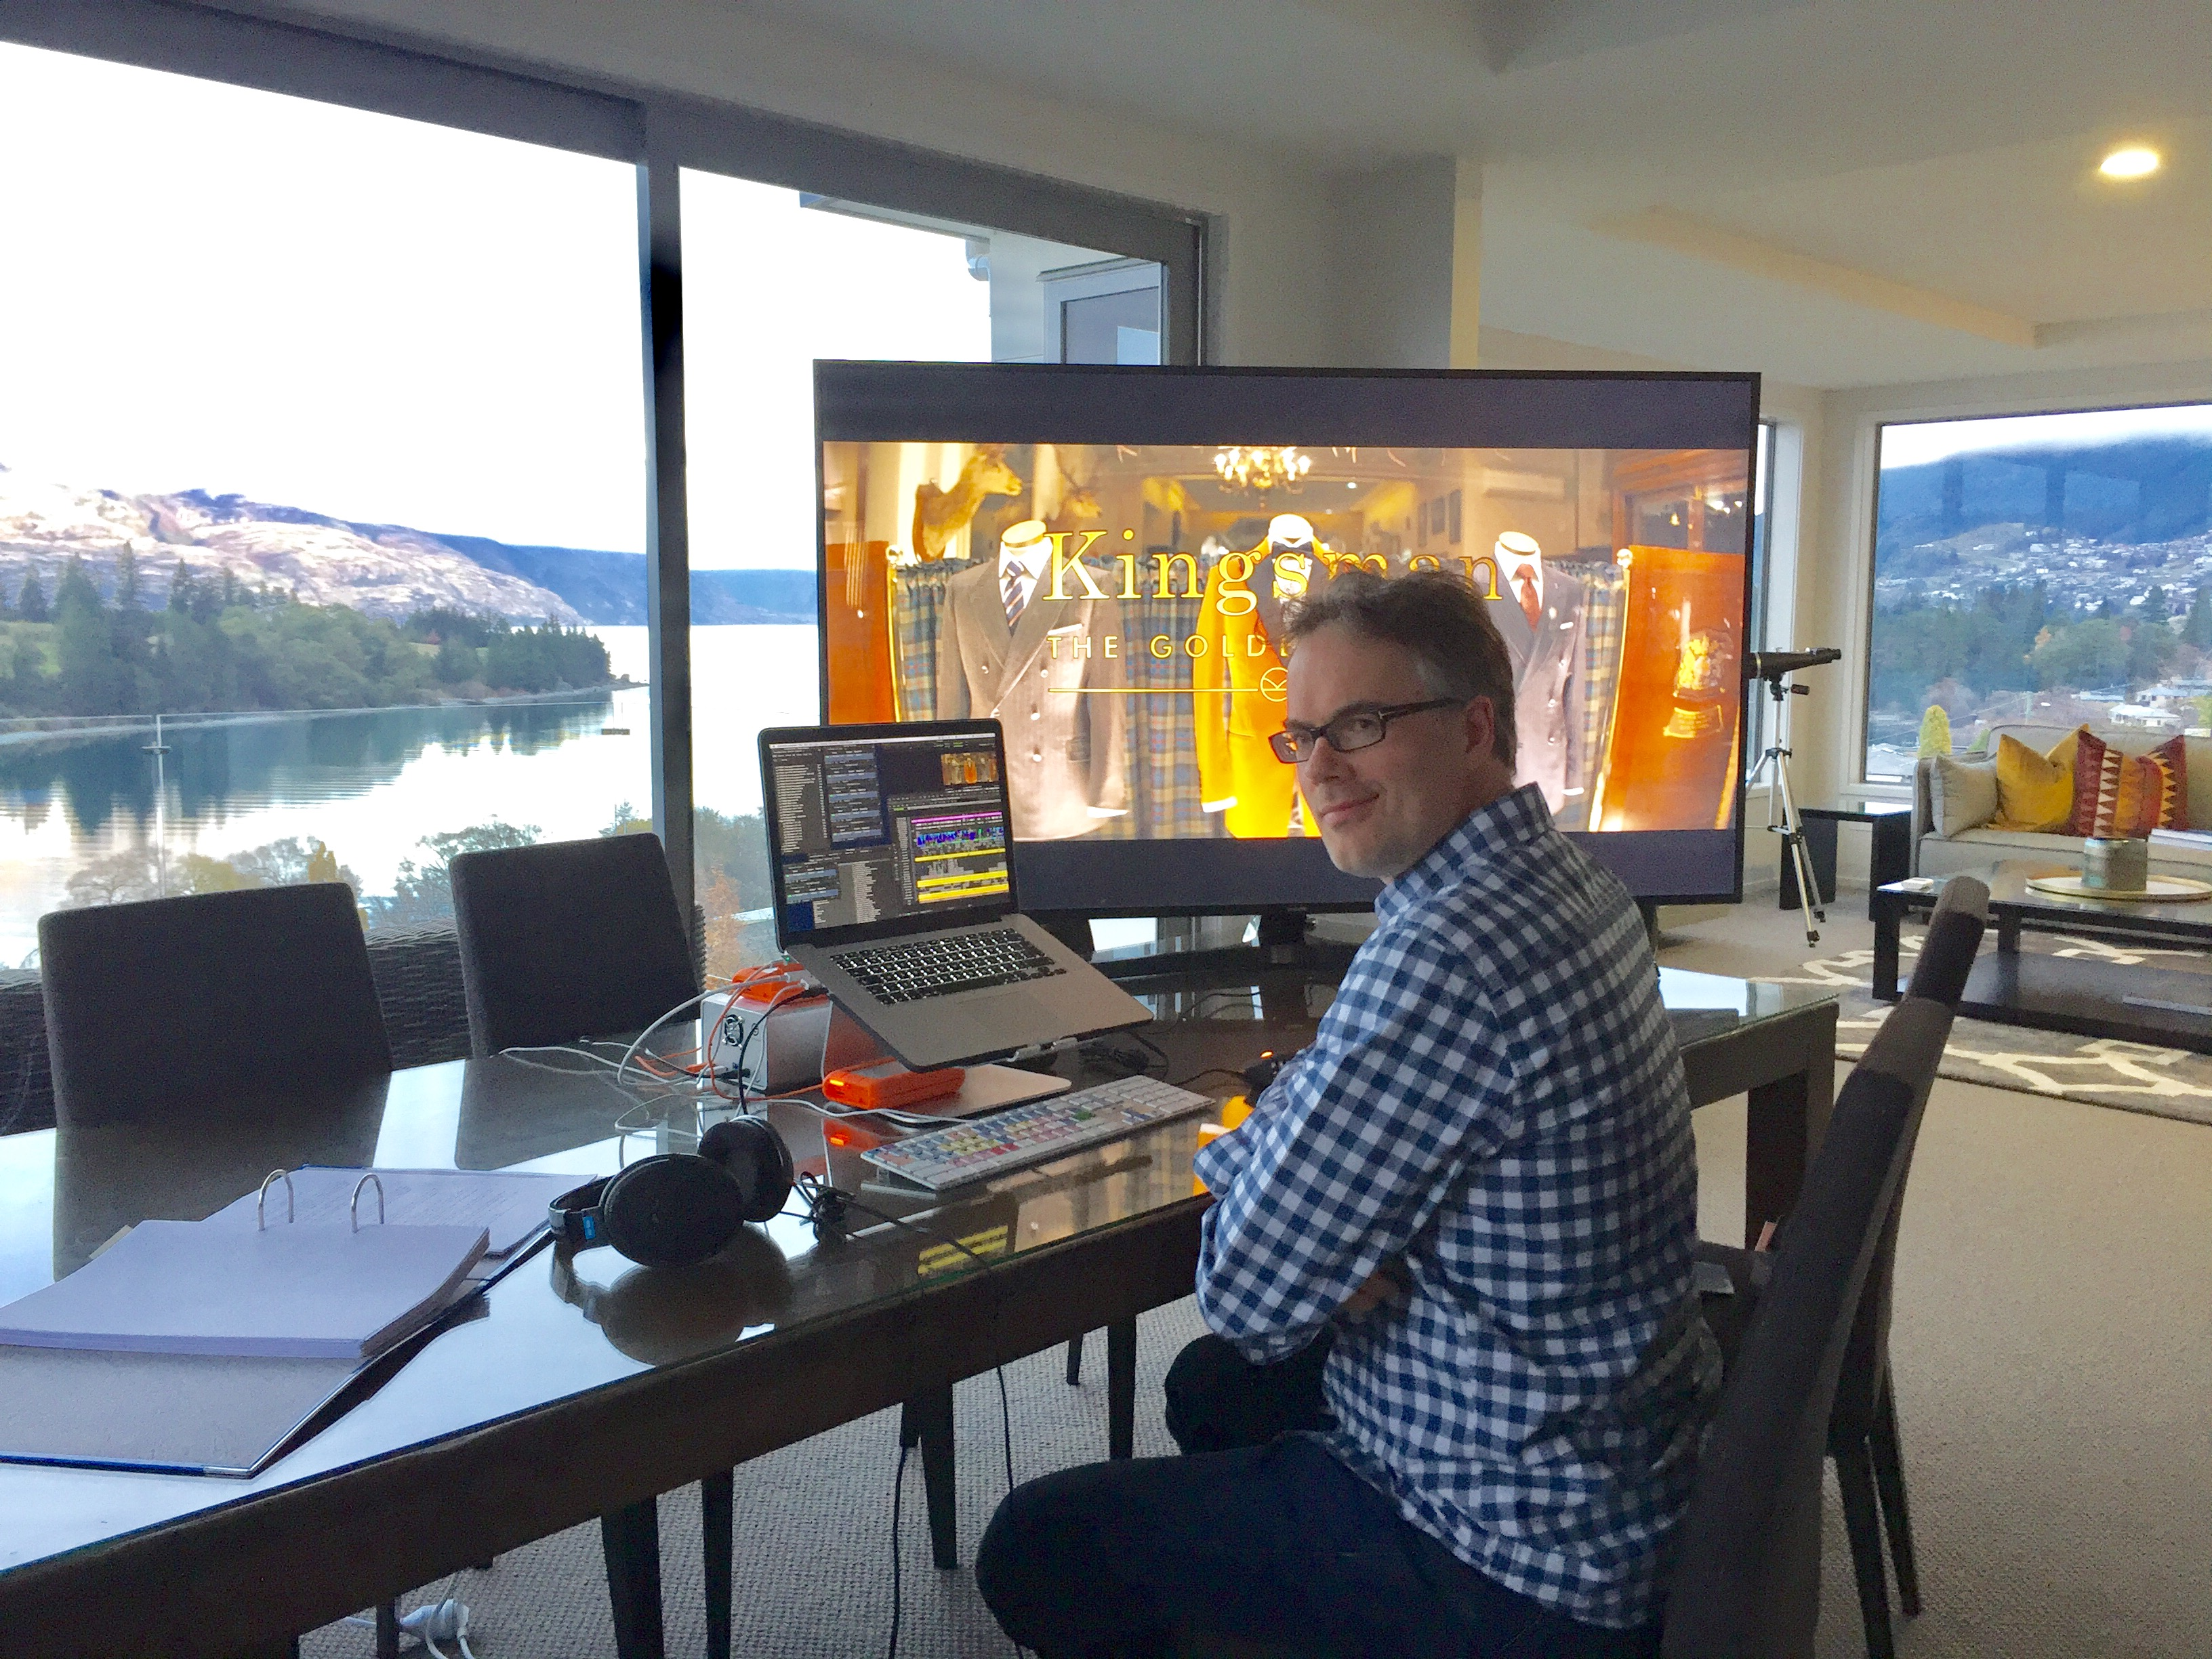 ART OF THE CUT with the assistant editors and VFX editors of Kingsman: The Golden Circle 40